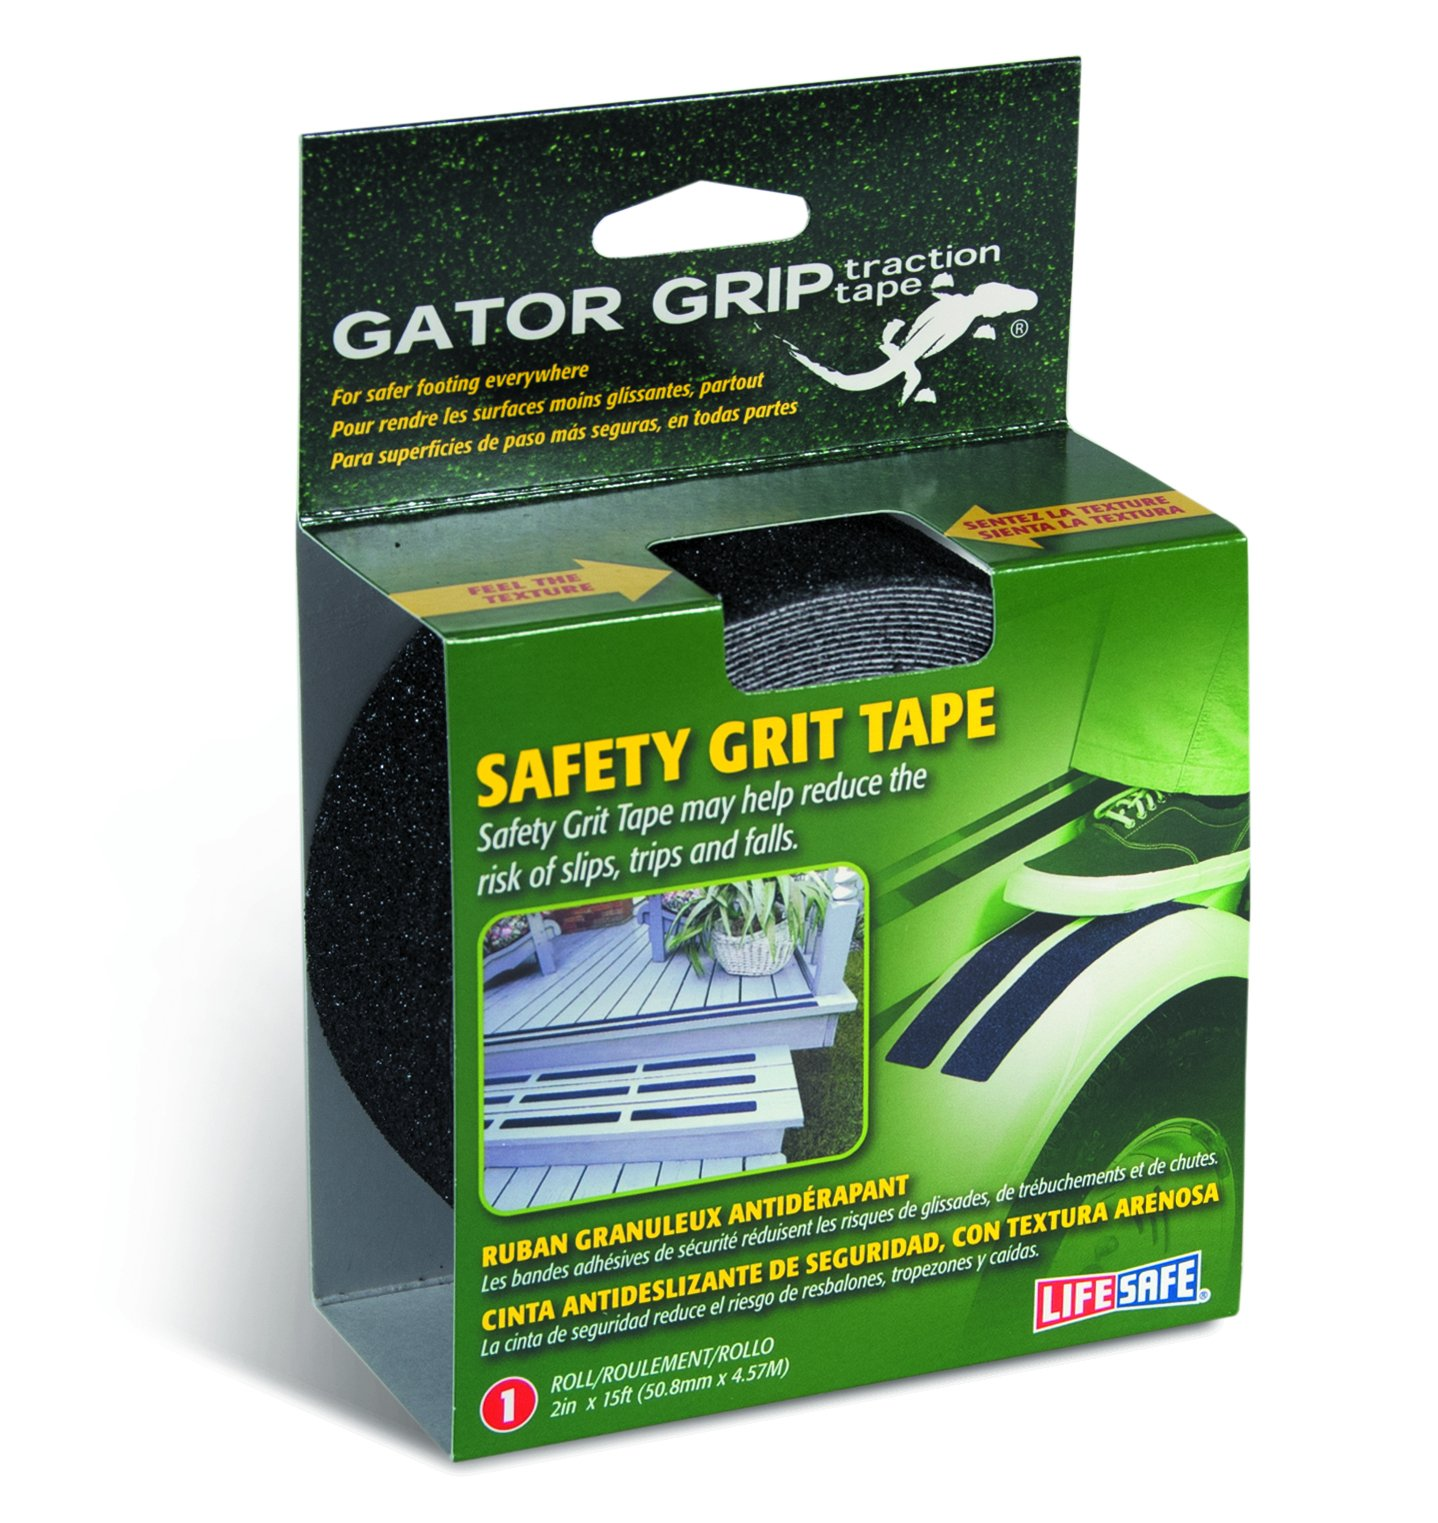 Gator Grip : RE3951 Premium Grade High Traction Non Slip 60 Grit Indoor Outdoor Anti-Slip Tape, 2 Inch x 15 Foot, Black by Gator Grip